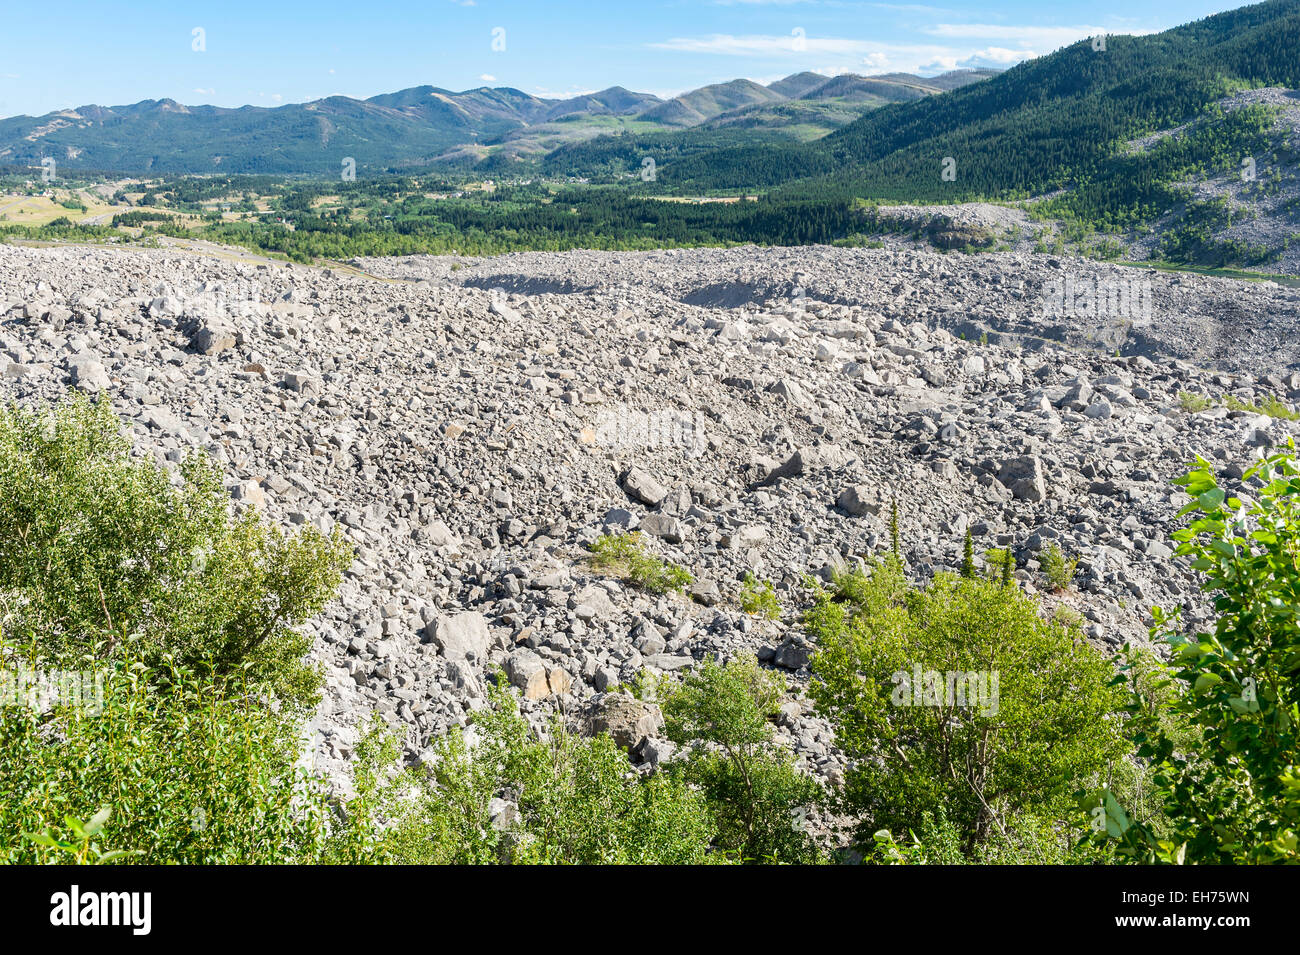 Site of the Frank Slide, a rockslide that destroyed part of Frank, Canada, 29 April 1903.  Crowsnest Pass, Alberta. - Stock Image